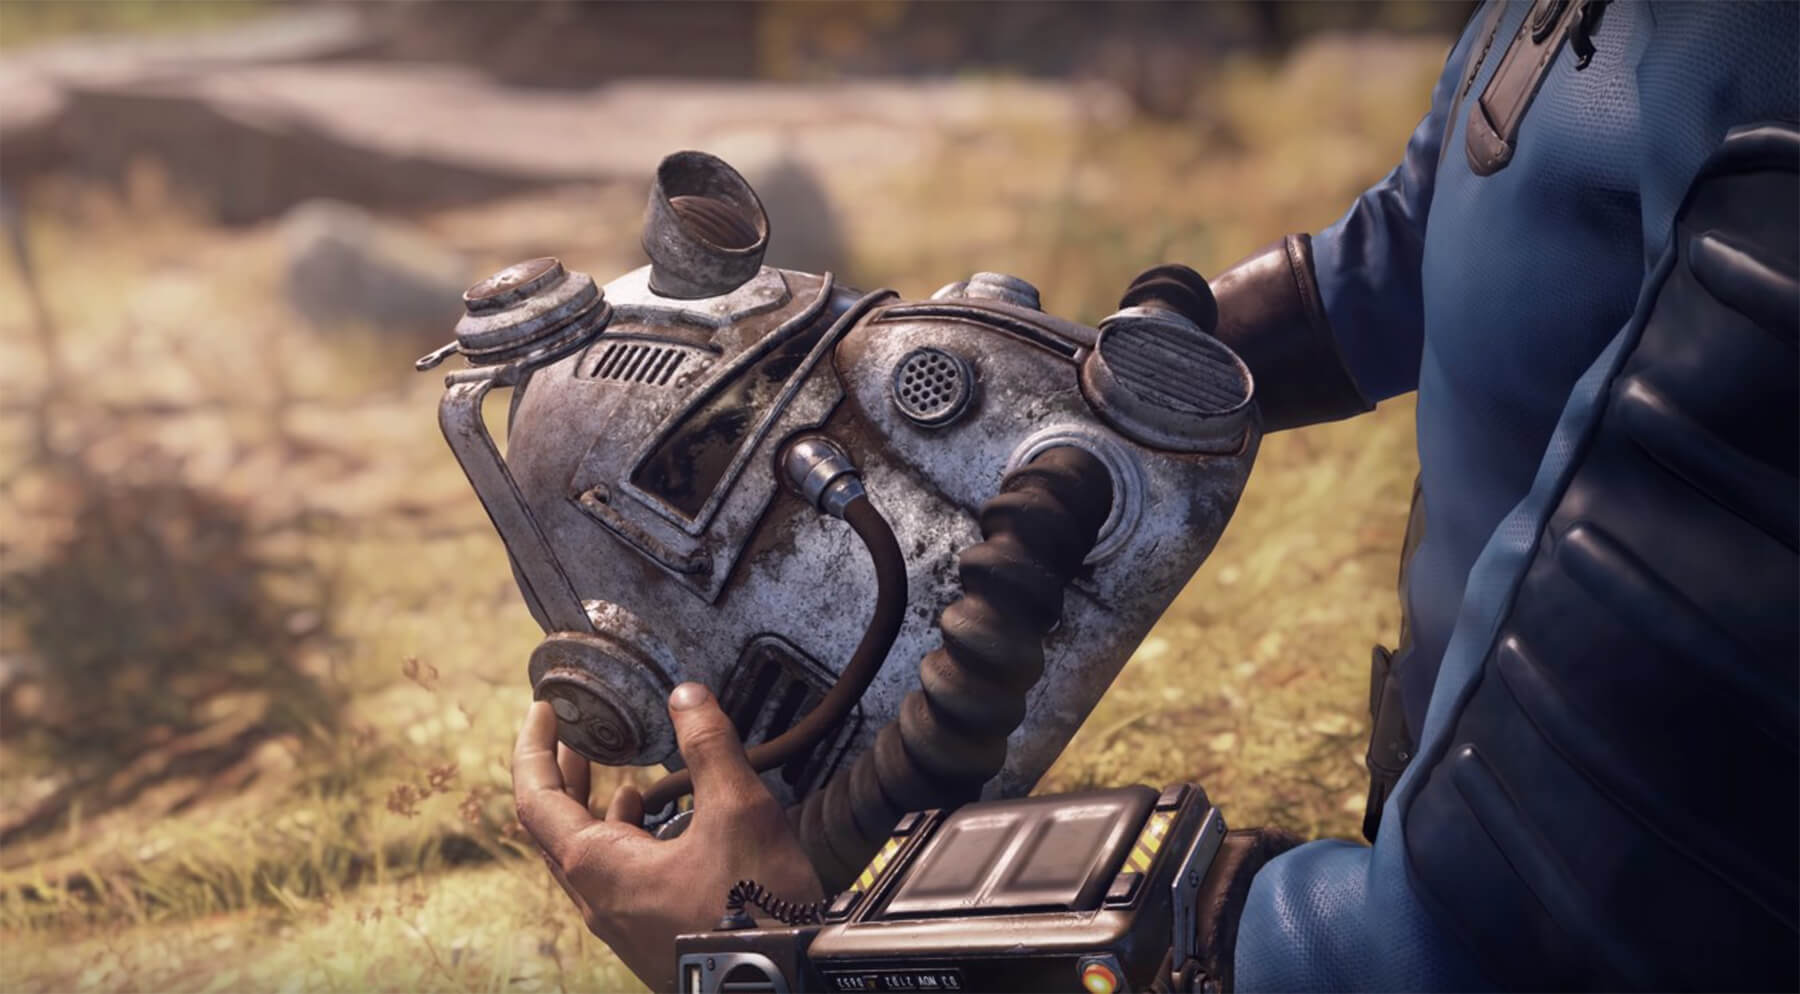 A Fallout 76 character holds a nuclear radiation helmet.